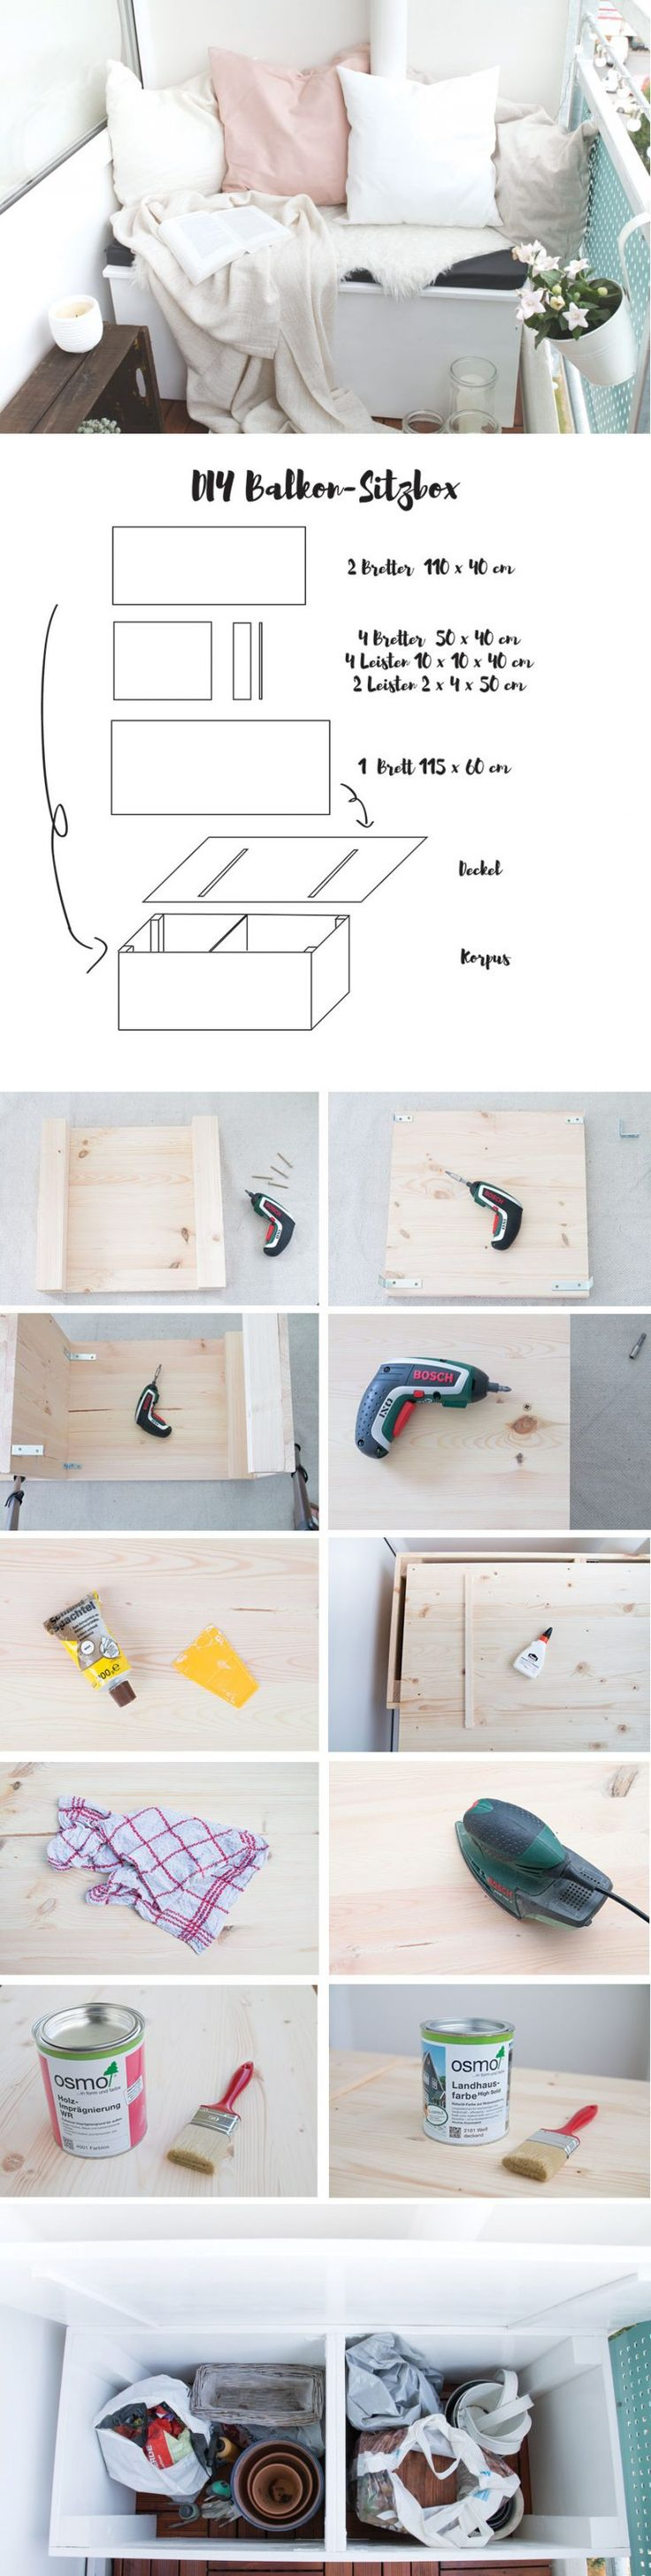 21 Best Diy Images On Pinterest | Backyard Patio, Cement Art And